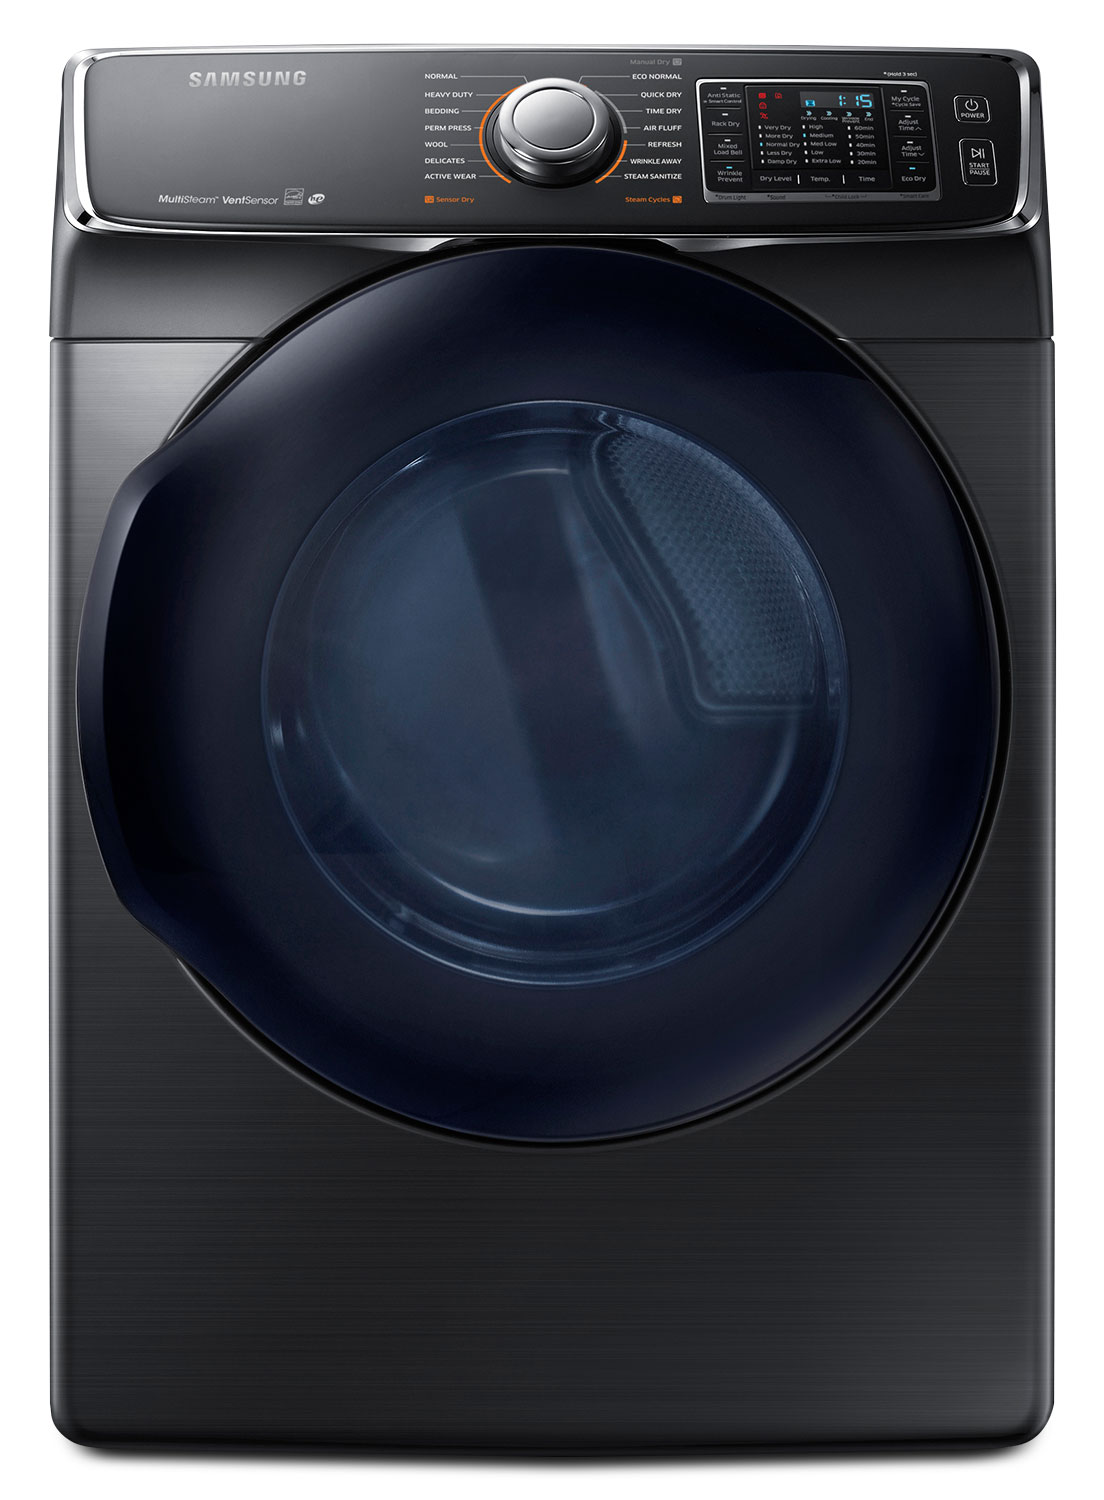 Samsung 7.5 Cu. Ft. Electric Dryer – Black Stainless Steel DV50K7500EV/AC